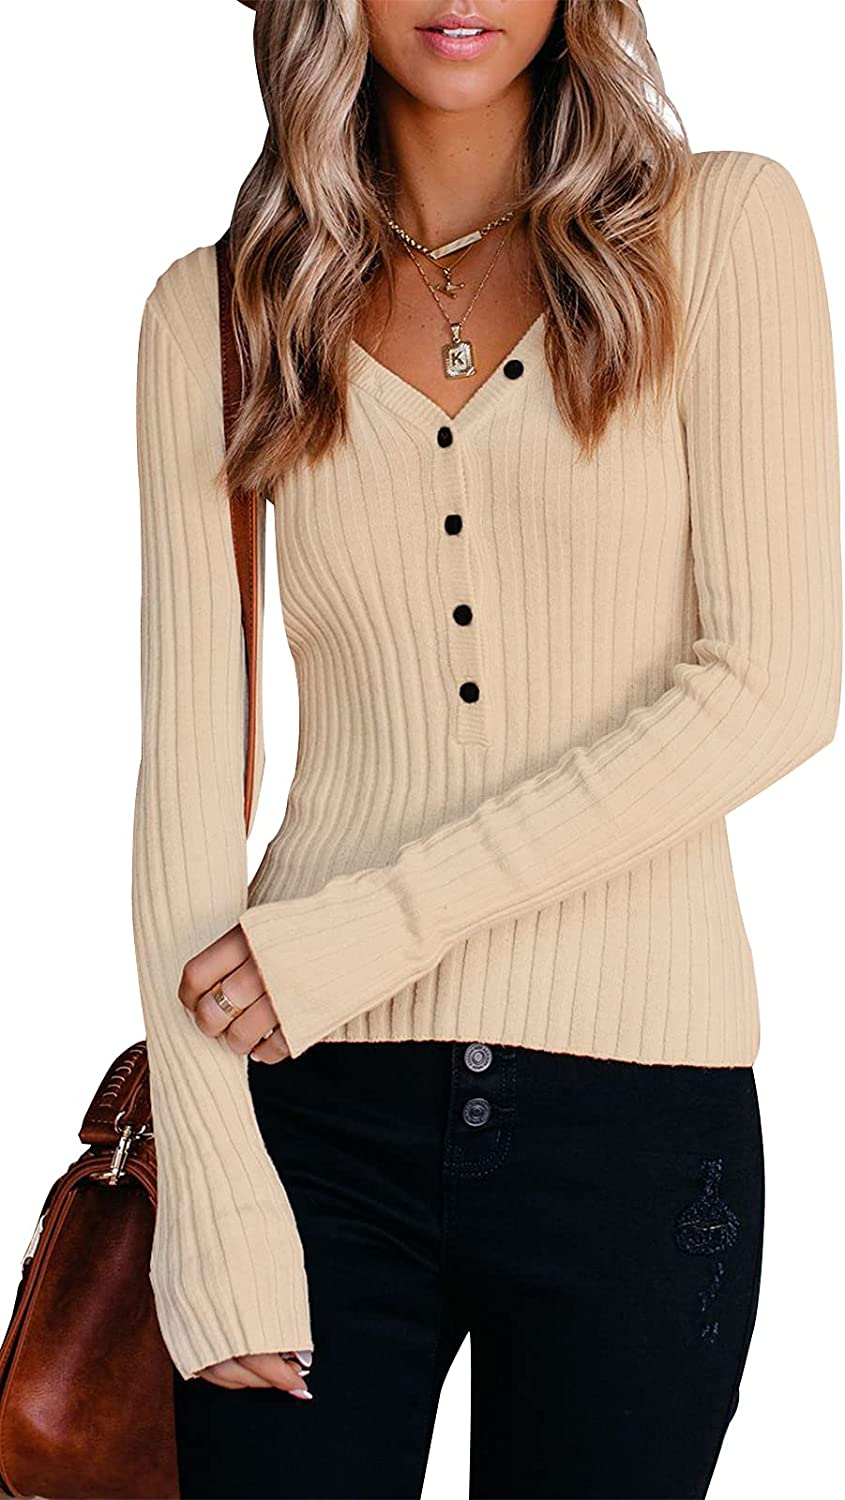 PRETTYGARDEN Long Sleeve Henley Shirts for Women - Button V Neck Basic Slim Fitted Ribbed Knit Tunic Sweater Tops